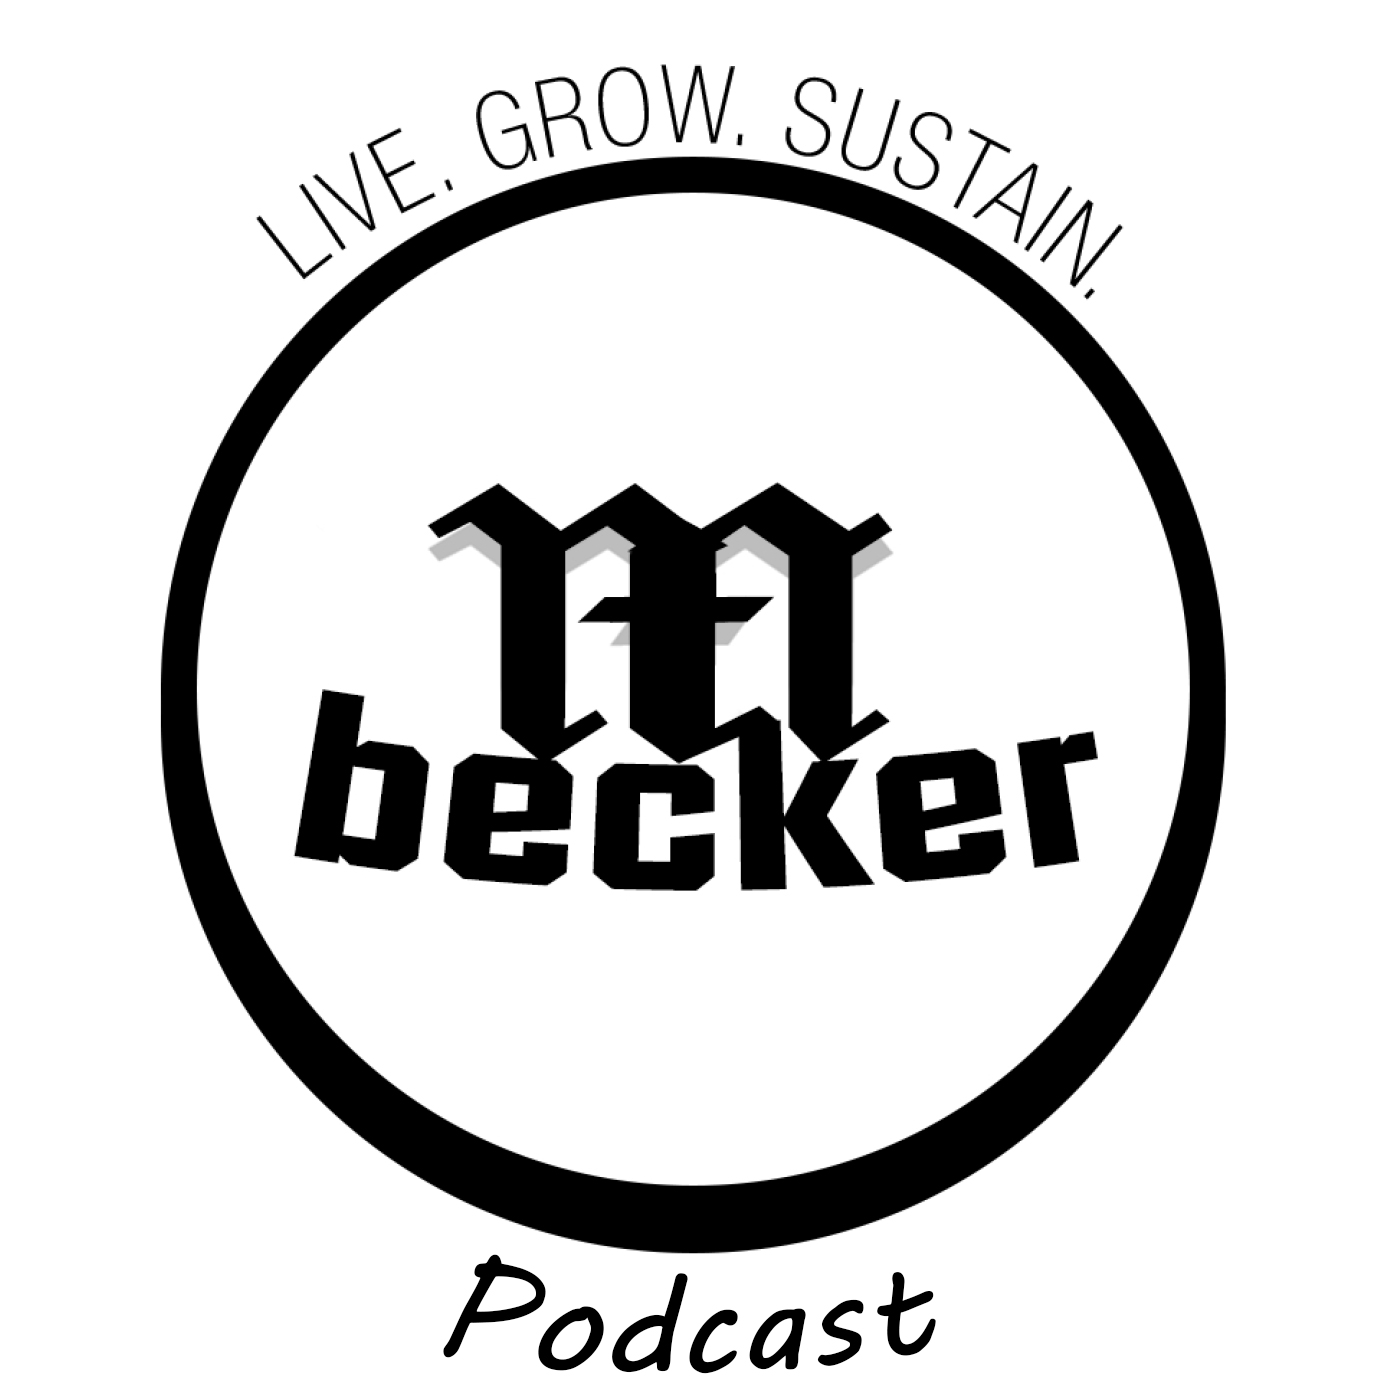 LIVE. GROW. SUSTAIN. PODCAST